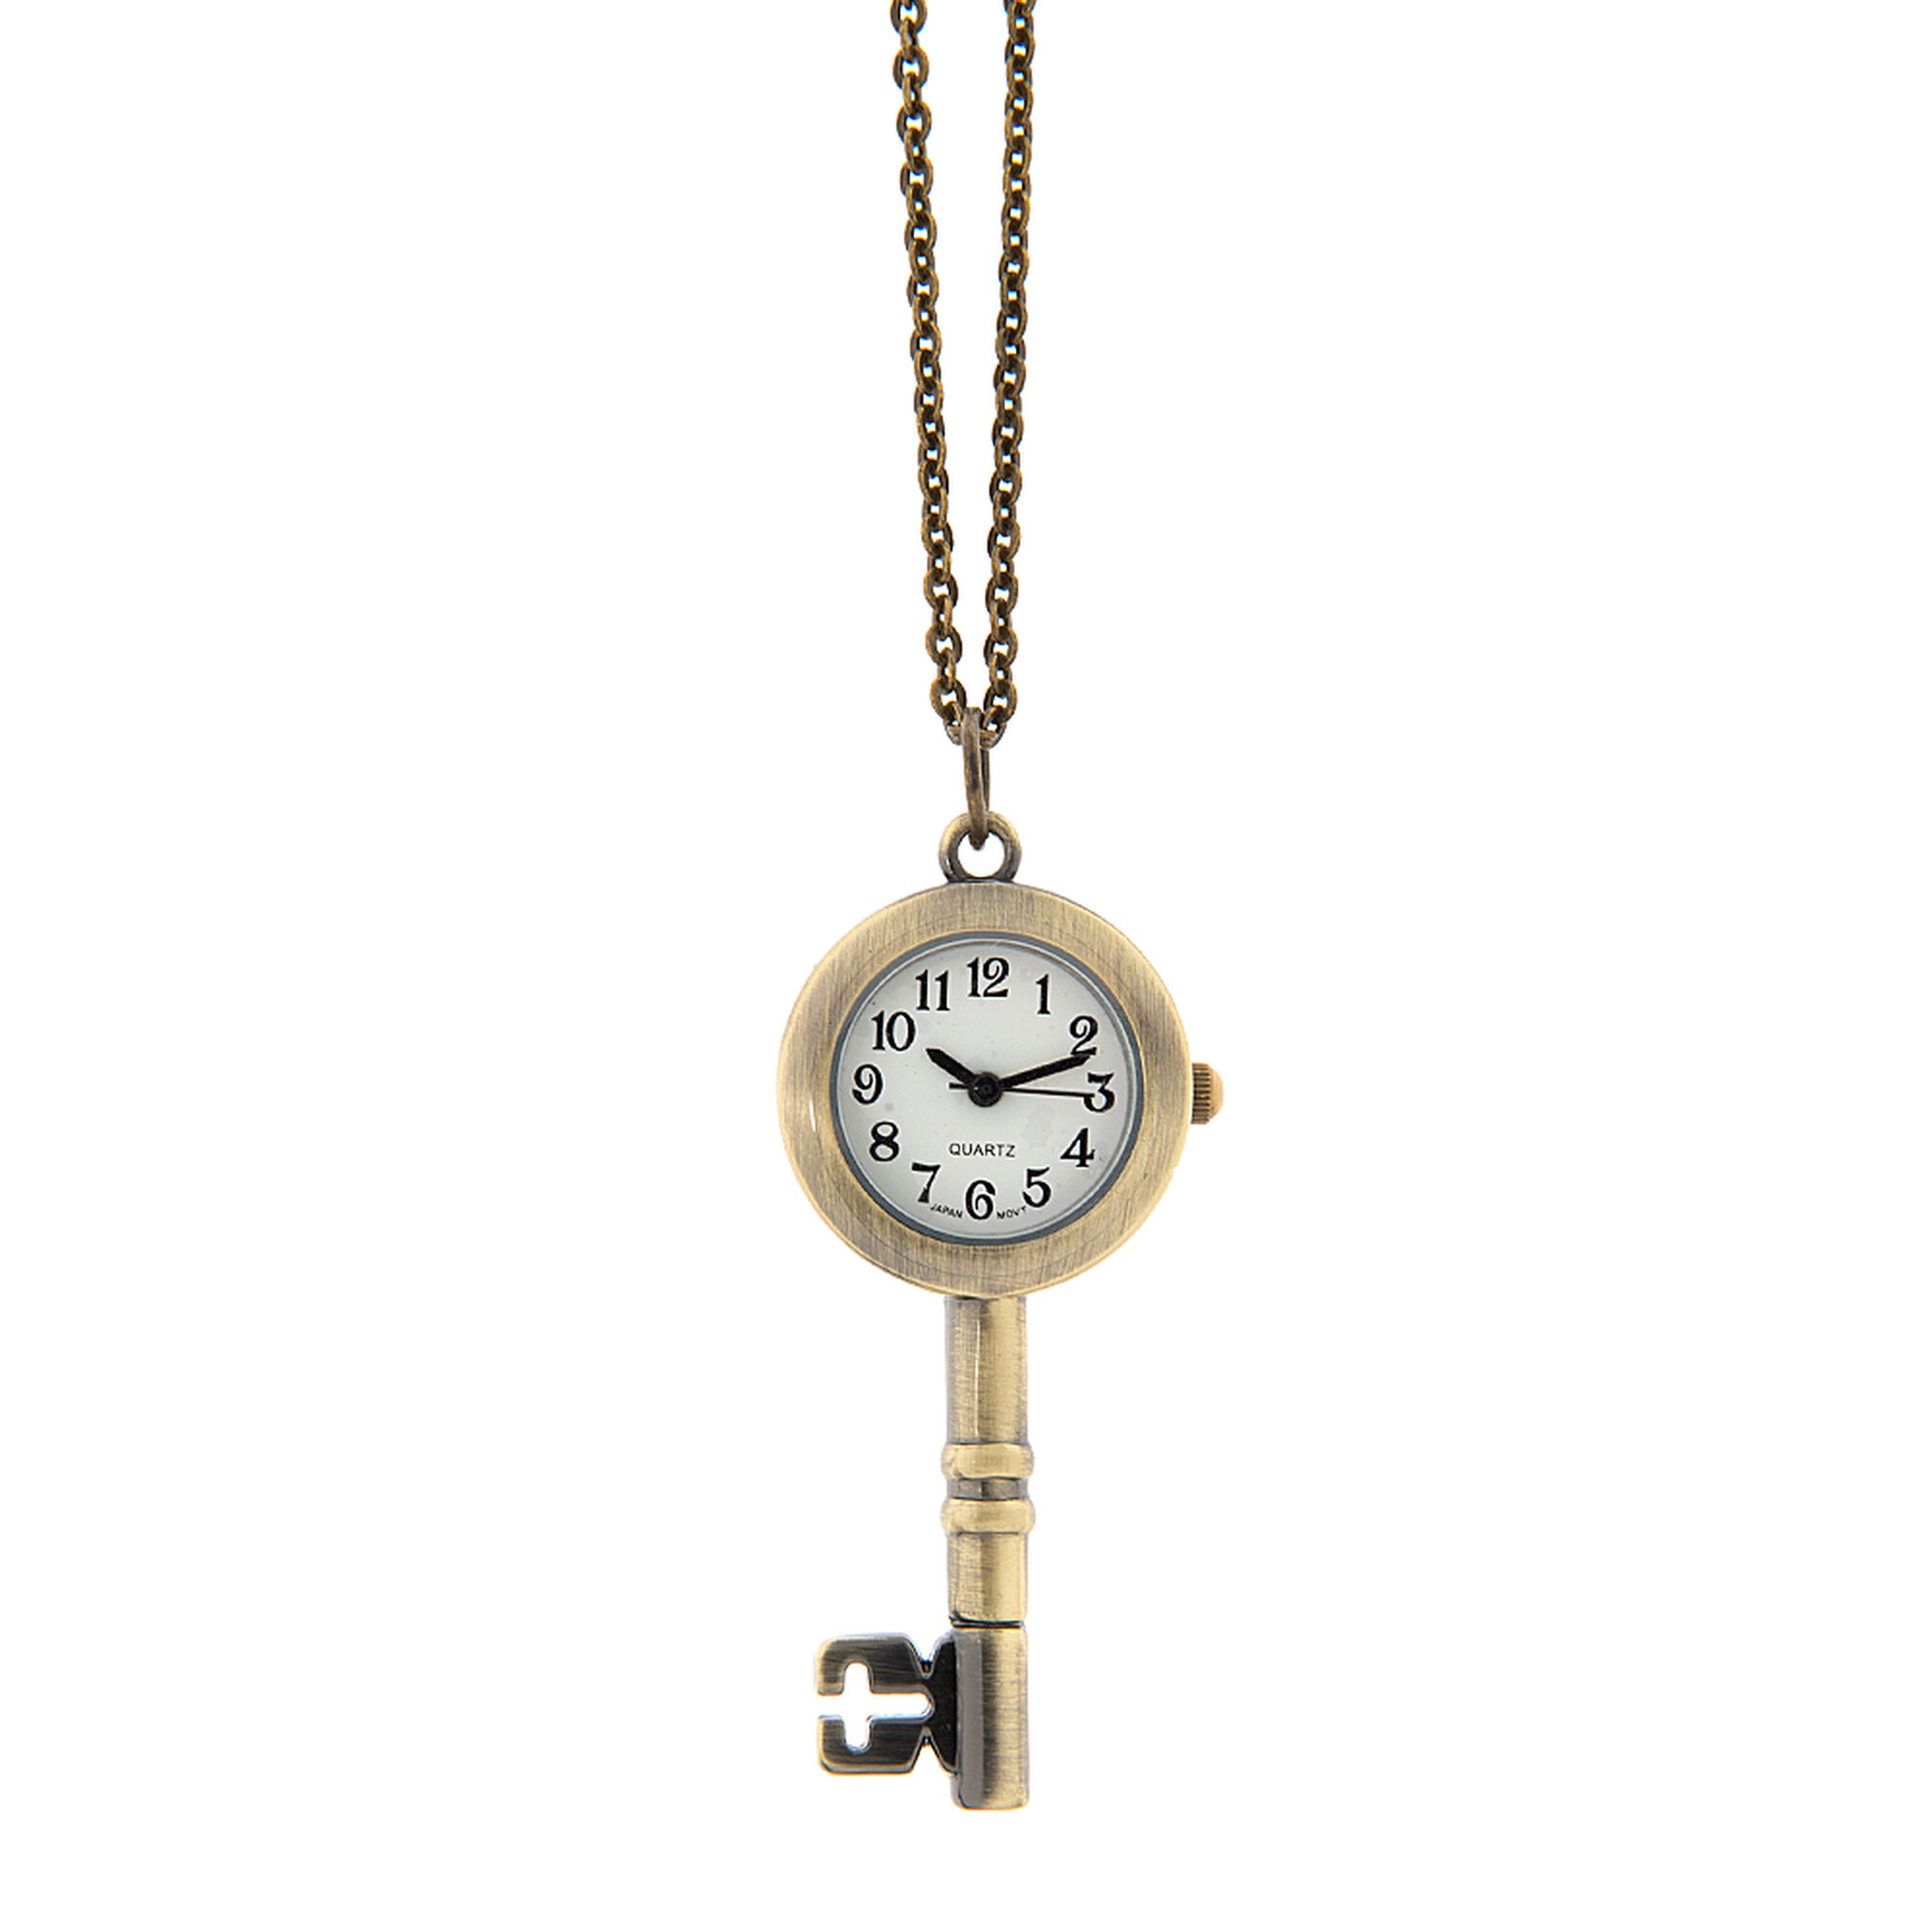 pendant products watch women open gotham with womens face chain antique tone s gold